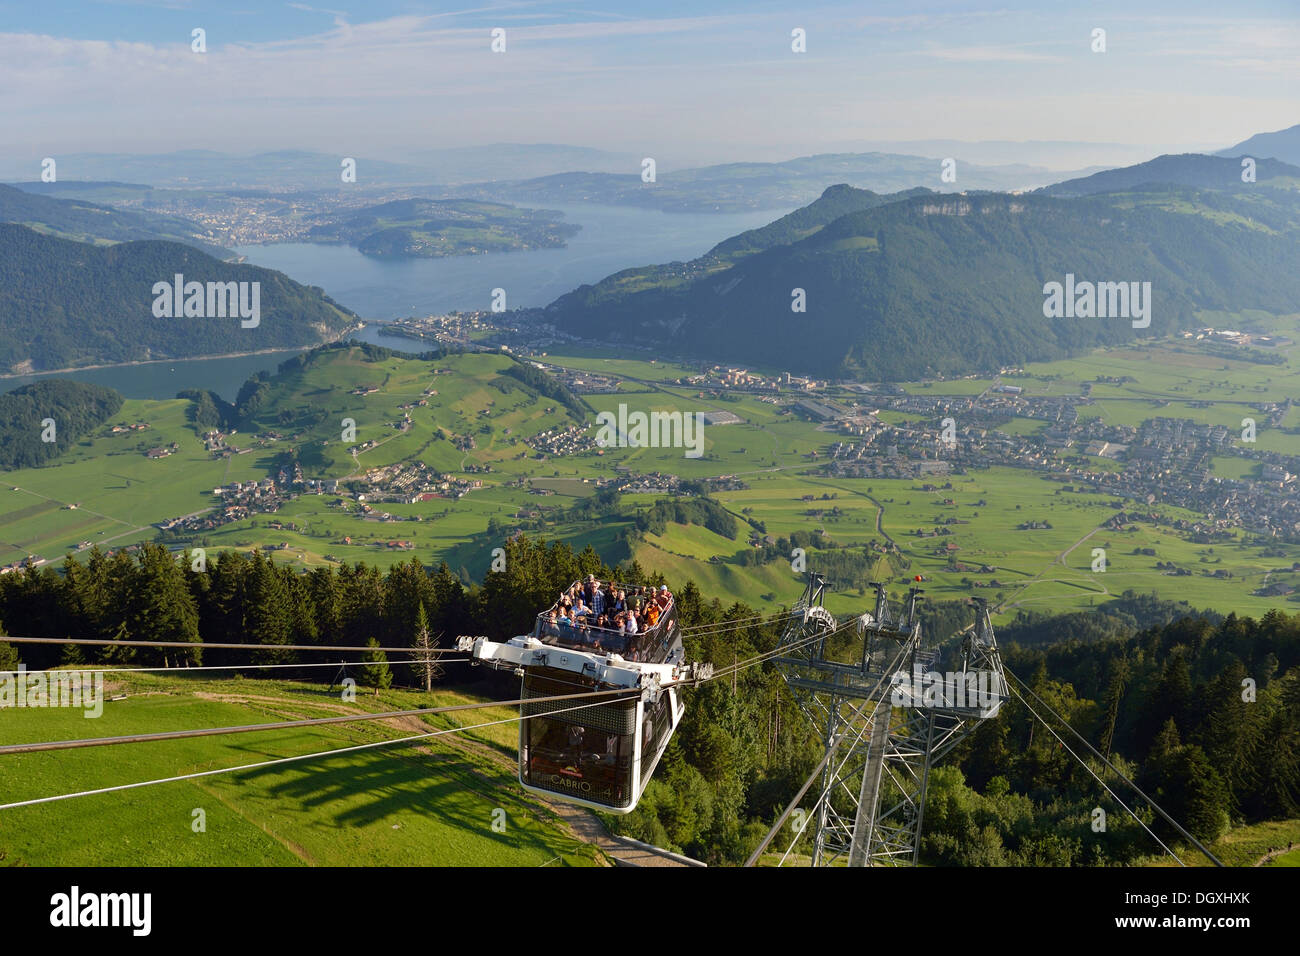 CabriO Bahn, the world's first cable car with an open top deck, going up Stanserhorn Mountain, Stans, Switzerland, Europe - Stock Image